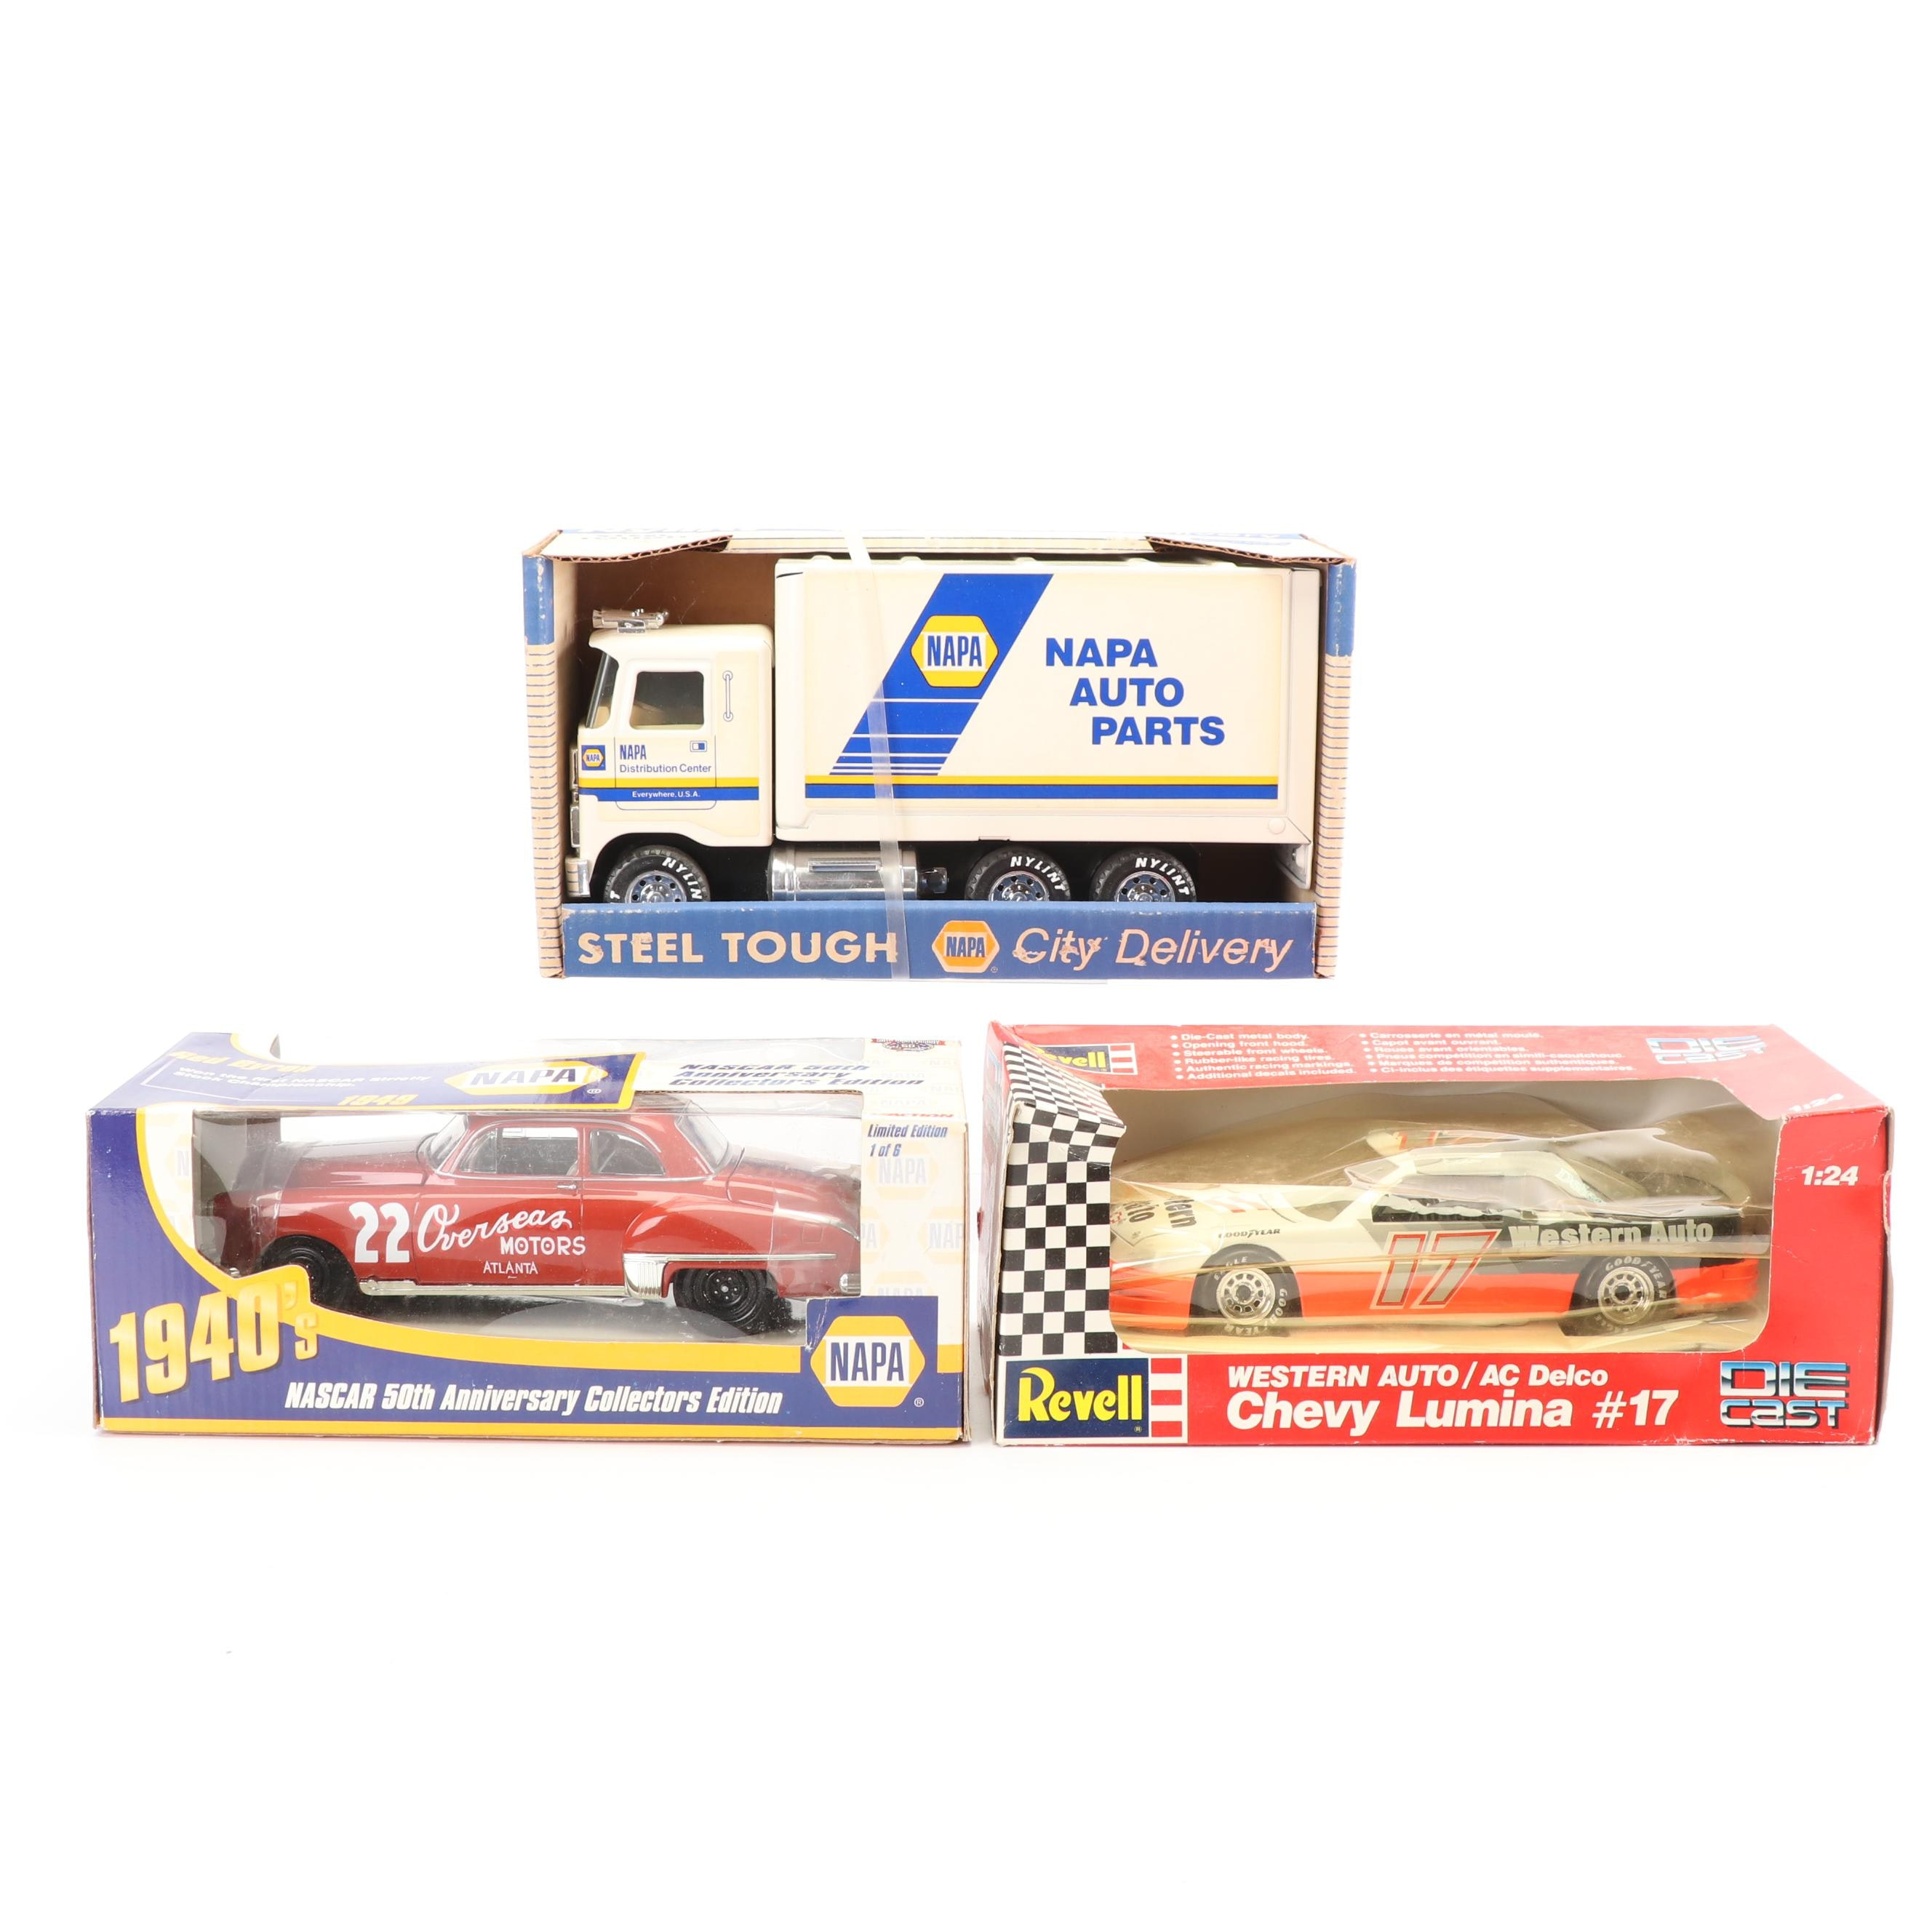 Die-Cast Cars and Truck featuring NAPA Auto Parts